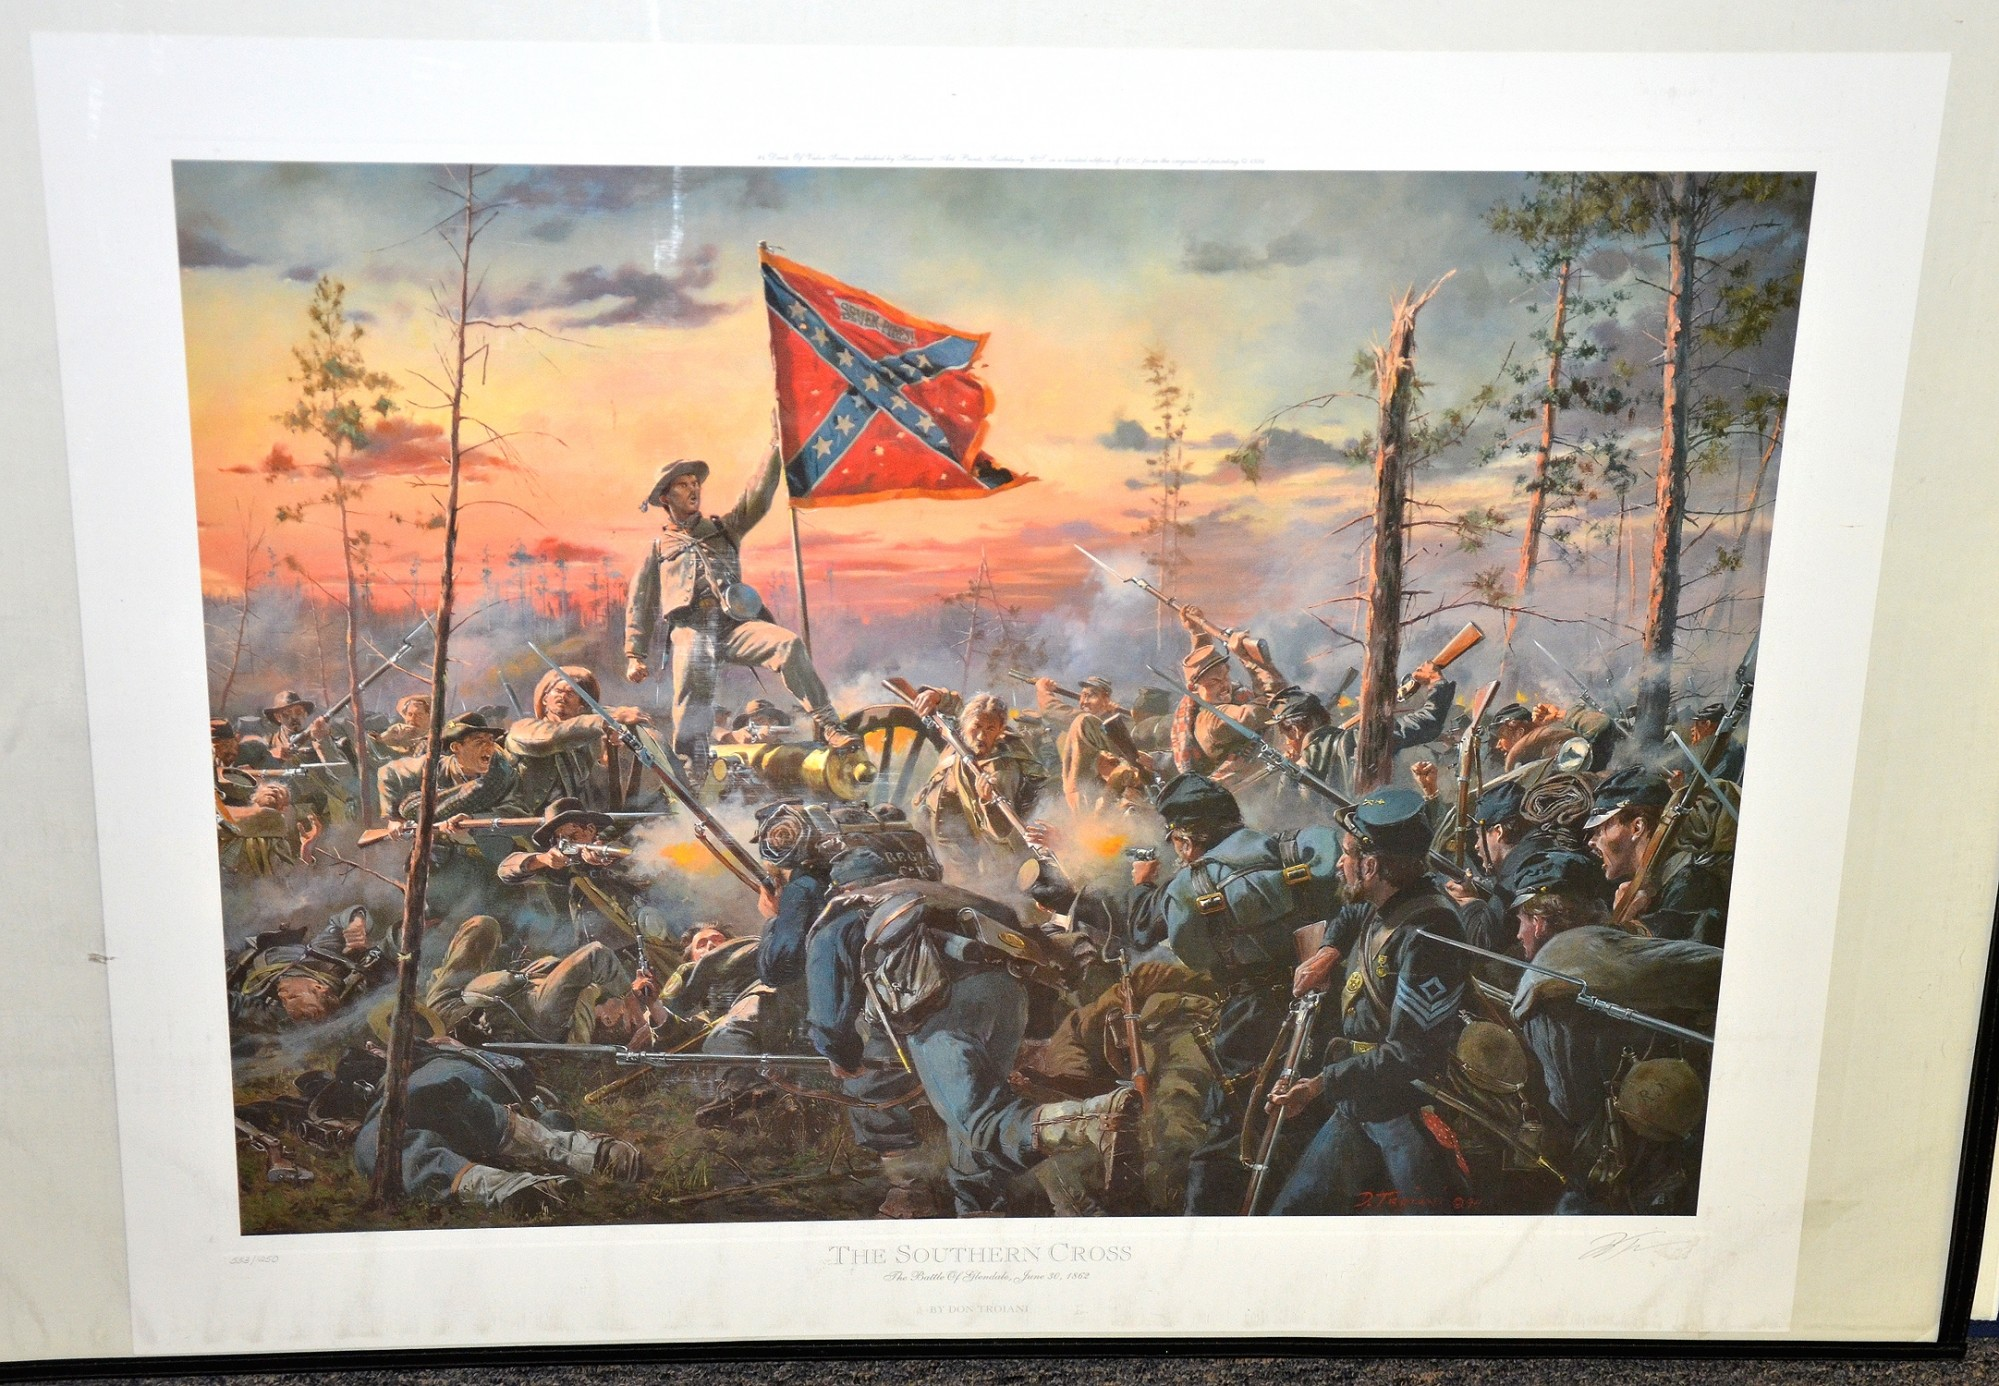 THE SOUTHERN CROSS – THE BATTLE OF GLENDALE, JUNE 30, 1862 - DON TROIANI